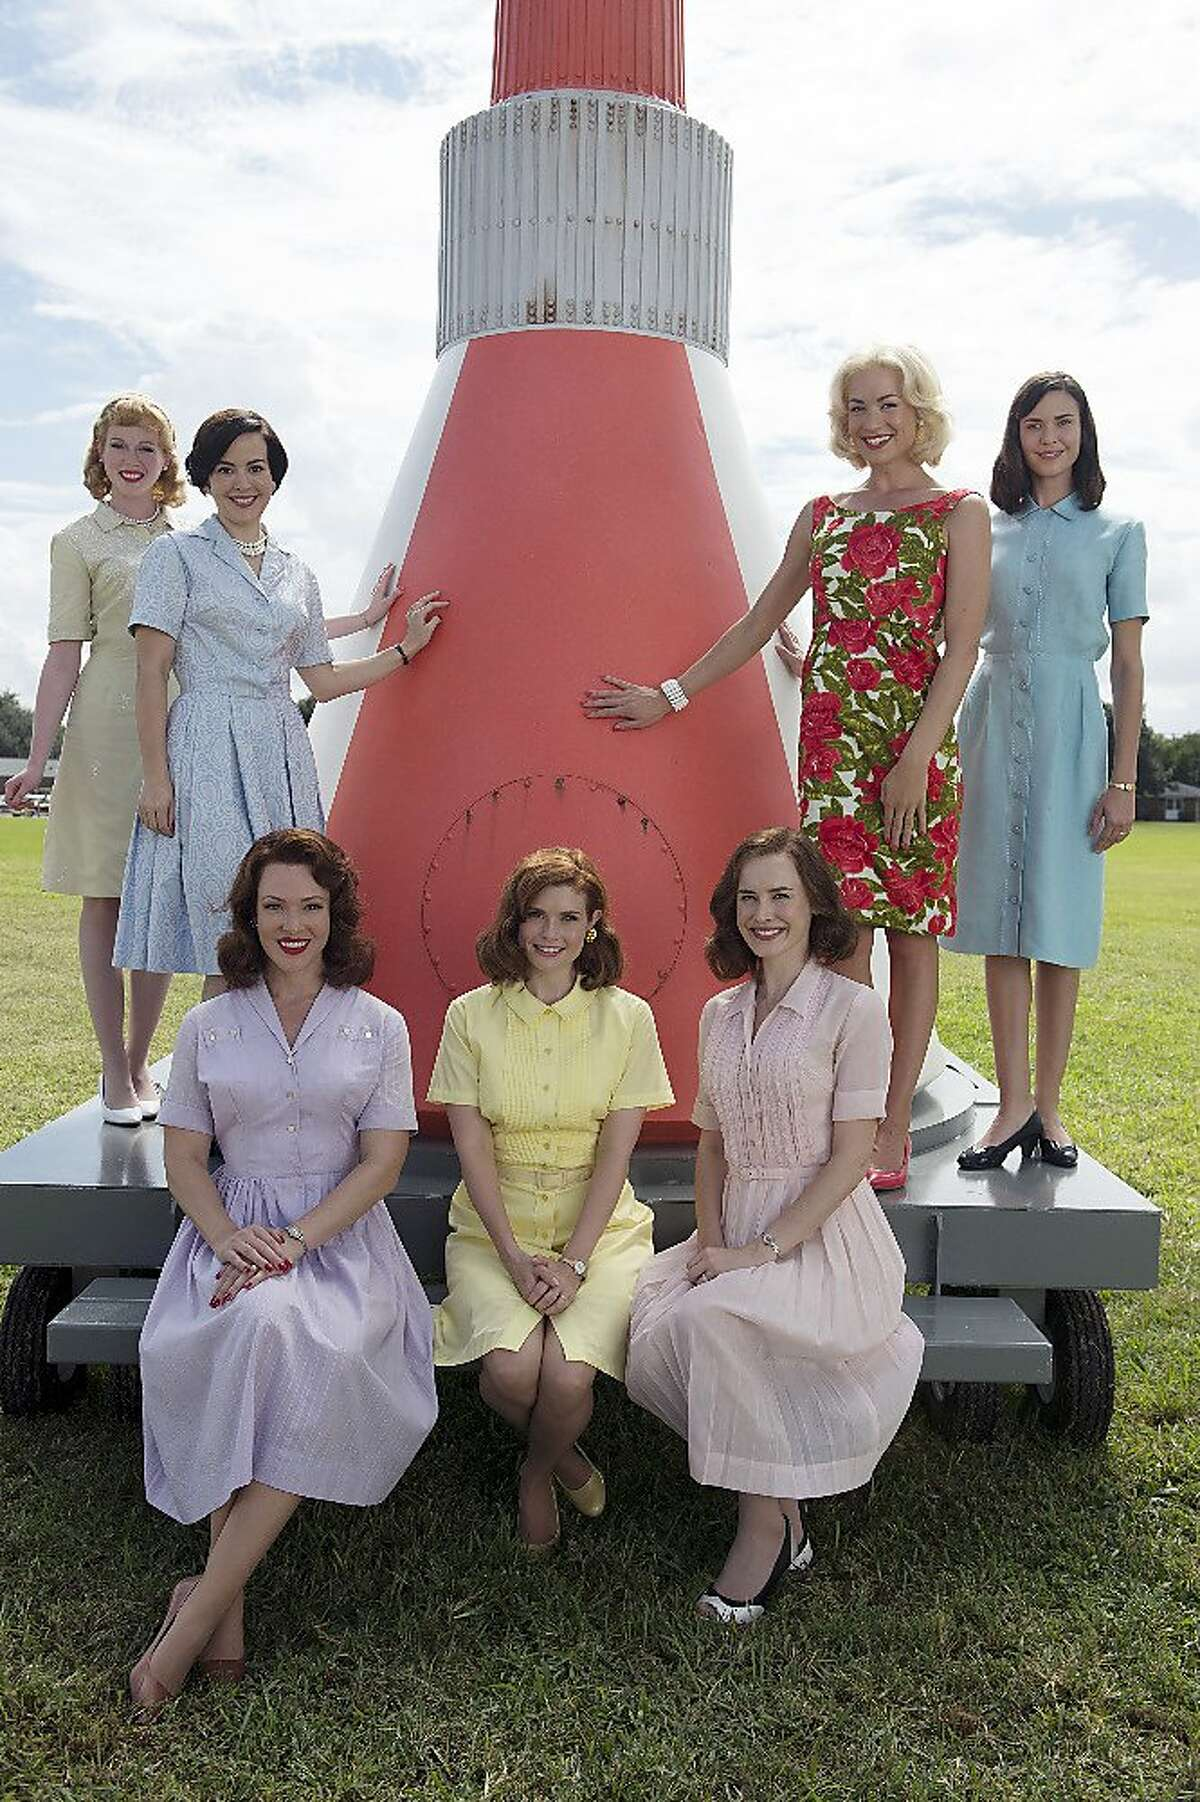 """ABC's """"The Astronaut Wives Club"""" stars Zoe Boyle as Jo Schirra, Azure Parsons as Annie Glenn, Erin Cummings as Marge Slayton, JoAnna Garcia Swisher as Betty Grissom, Dominique McElligott as Louise Shepard, Yvonne Strahovski as Rene Carpenter and Odette Annable as Trudy Cooper. May, 2015 THE ASTRONAUTS WIVES CLUB - ABC's """"The Astronaut Wives Club"""" stars Zoe Boyle as Jo Schirra, Azure Parsons as Annie Glenn, Erin Cummings as Marge Slayton, JoAnna Garcia Swisher as Betty Grissom, Dominique McElligott as Louise Shepard, Yvonne Strahovski as Rene Carpenter and Odette Annable as Trudy Cooper. (ABC/Cook Allender)"""